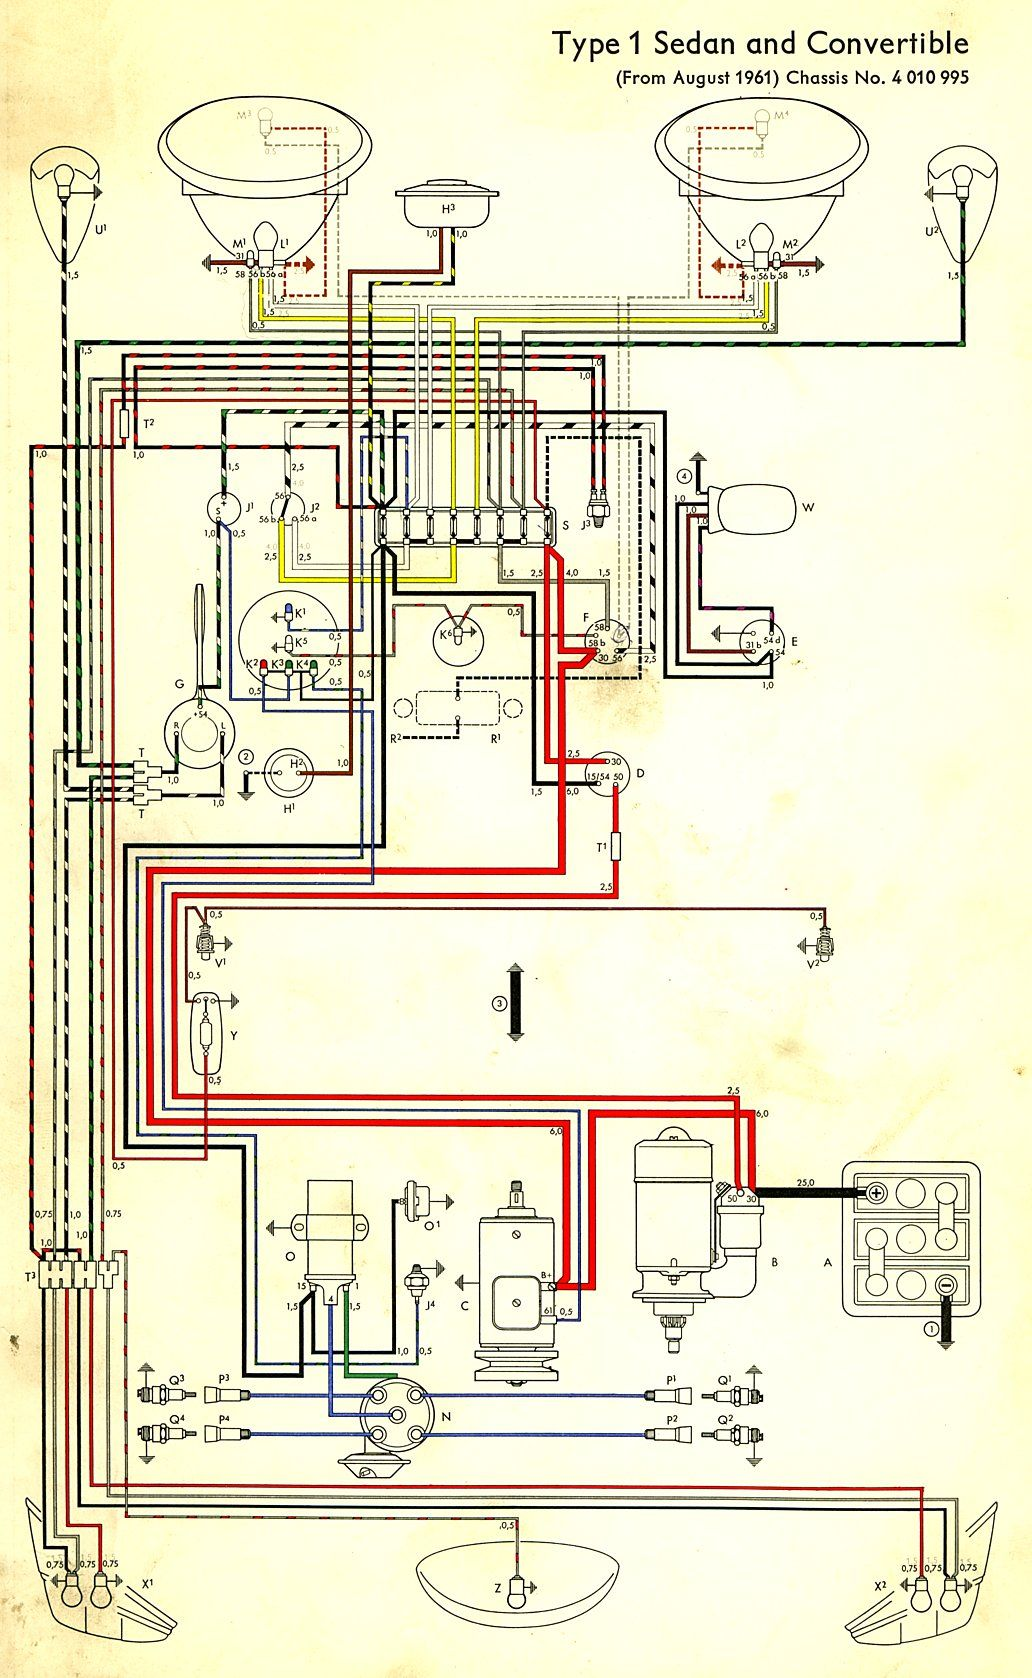 wiring diagram in color 1964 vw bug beetle convertible the samba rh pinterest com vw beetle wiring diagram 1974 vw beetle wiring diagram 1971